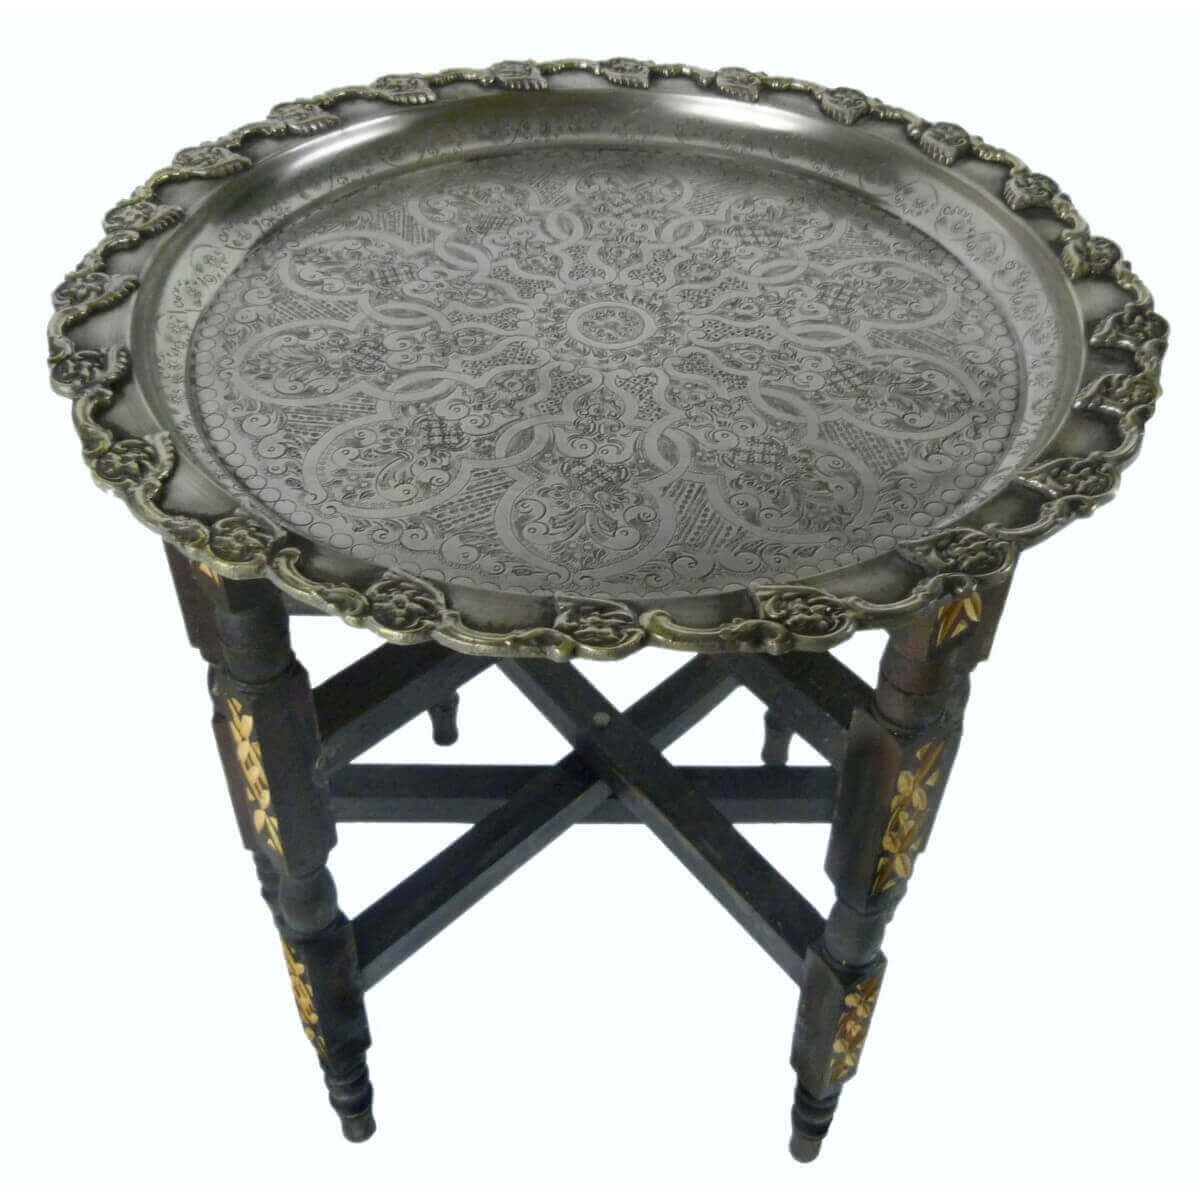 oriental plateau th table d 39 appoint pliante marocain basse ebay. Black Bedroom Furniture Sets. Home Design Ideas